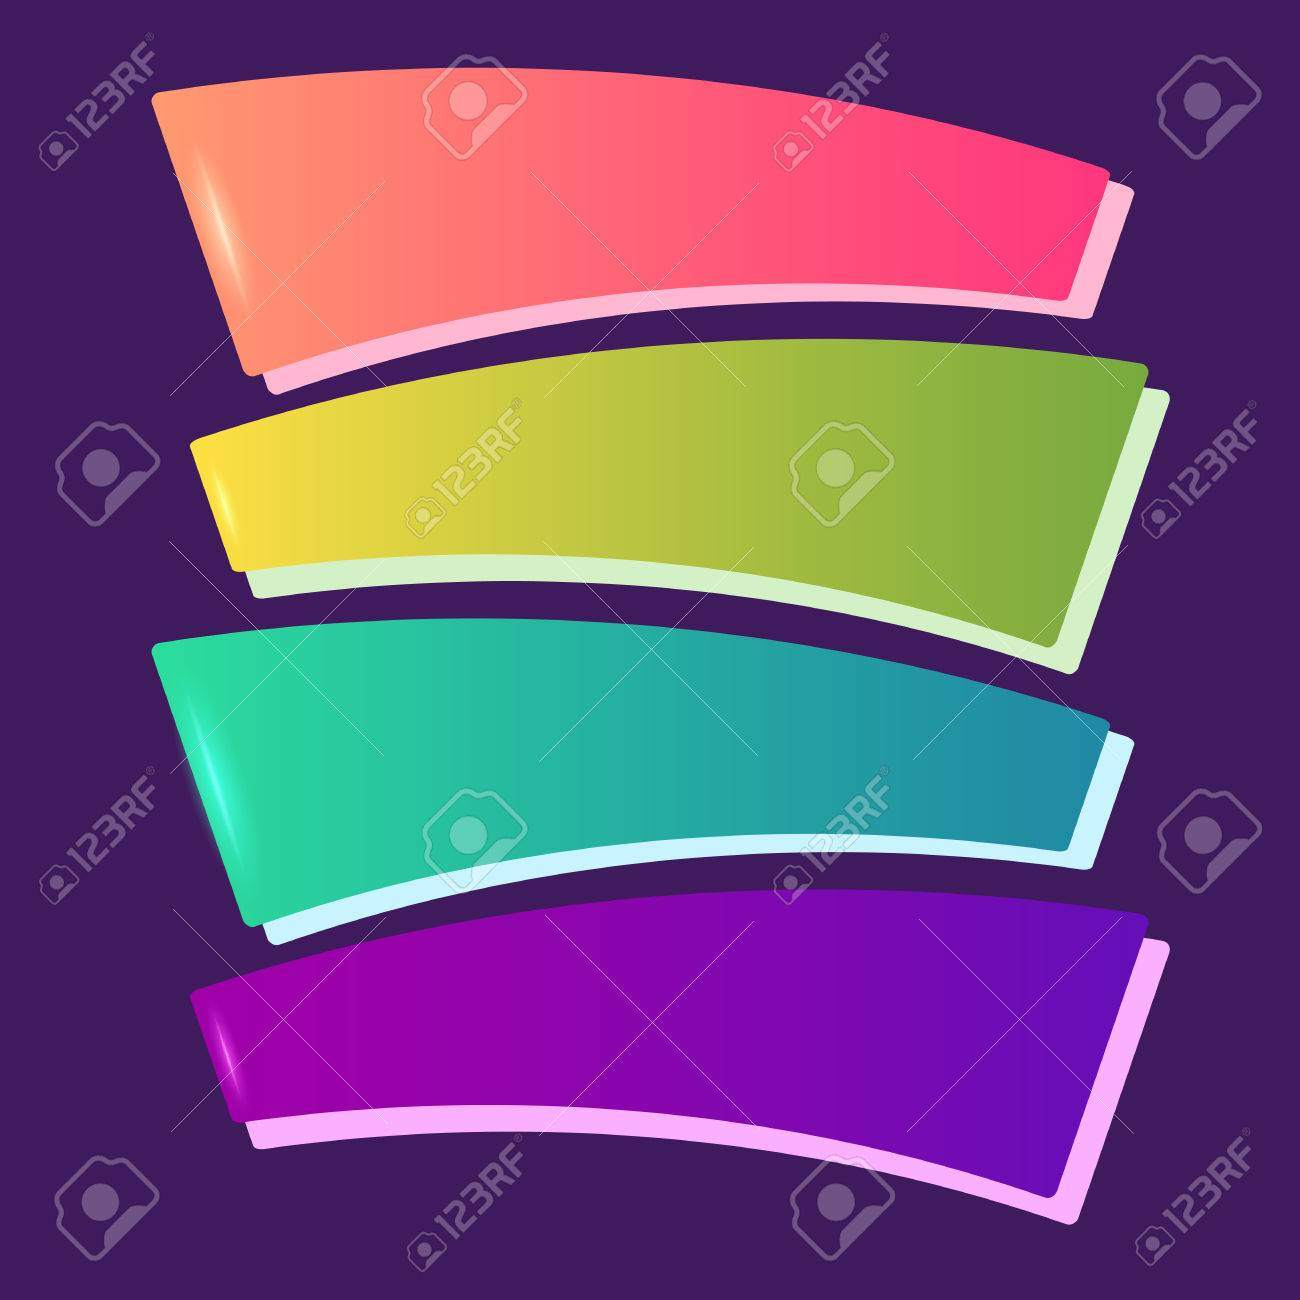 advertisement design elements template on purple background advertisement design elements template on purple background vector can use for info graphic